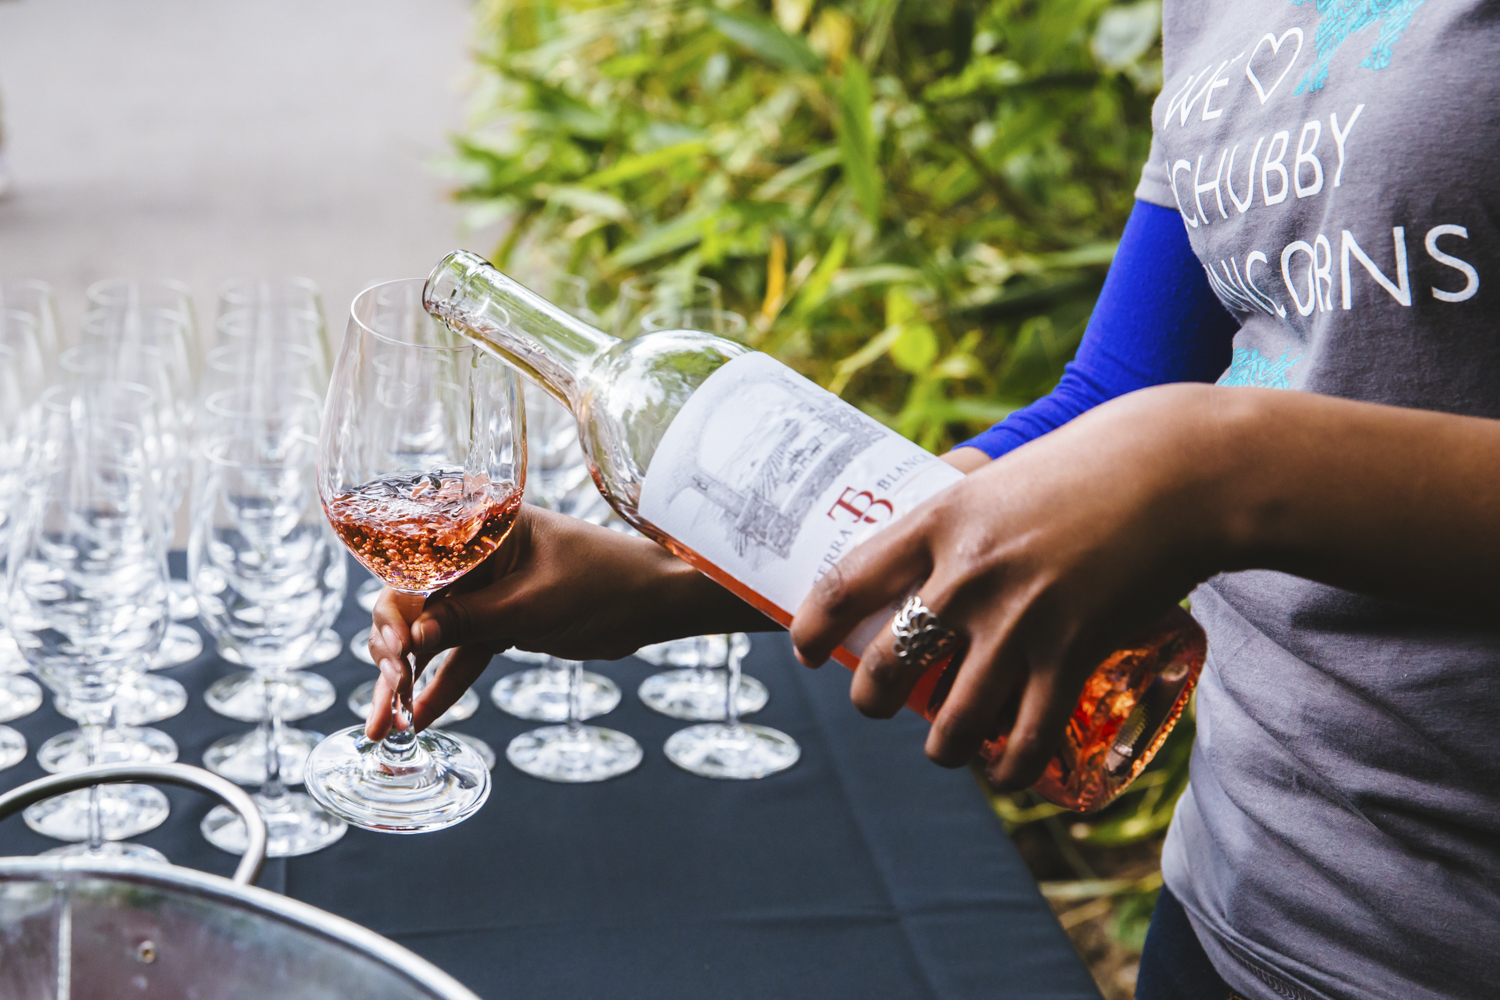 If there are two things that make a party - it's rhinos and rosé, am I right?! The Woodland Park Zoo knows this, and thus threw their first ever{ }Rhinos and Rosé party, which kicks off their annual Jungle Party fundraiser. The event sold out before they could even promote it! Guests enjoyed bites from the best restaurant in town, sipping on roses, and of course - checking out Taj and Glenn, the zoo's new rhinos.{ }Jungle Party this year is Friday, July 13. (Image: Sunita Martini / Seattle Refined){ }